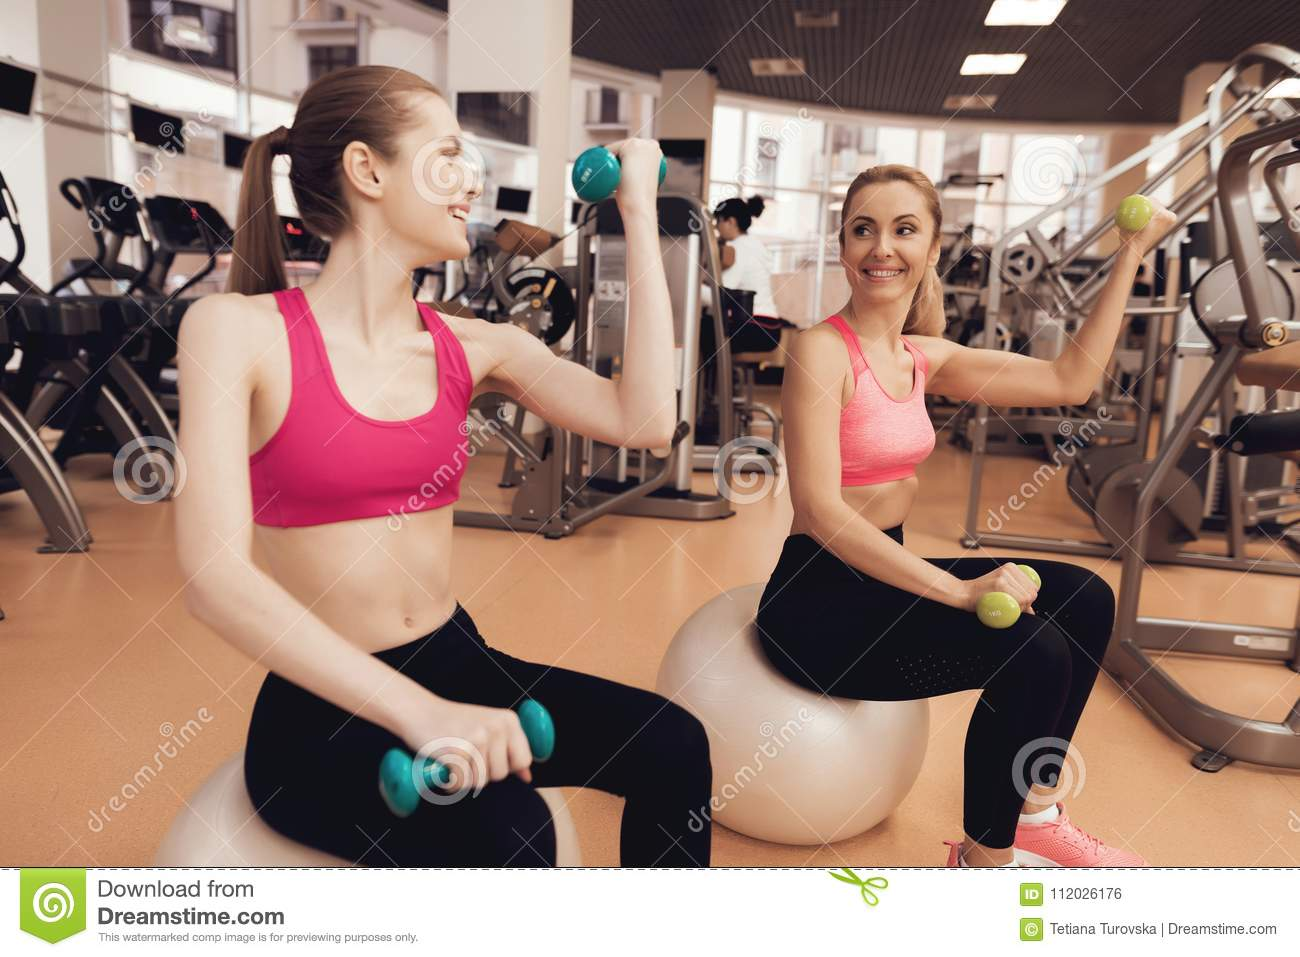 Two women sitting doing exercises with dumbbells at the gym. They look happy, fashionable and fit.